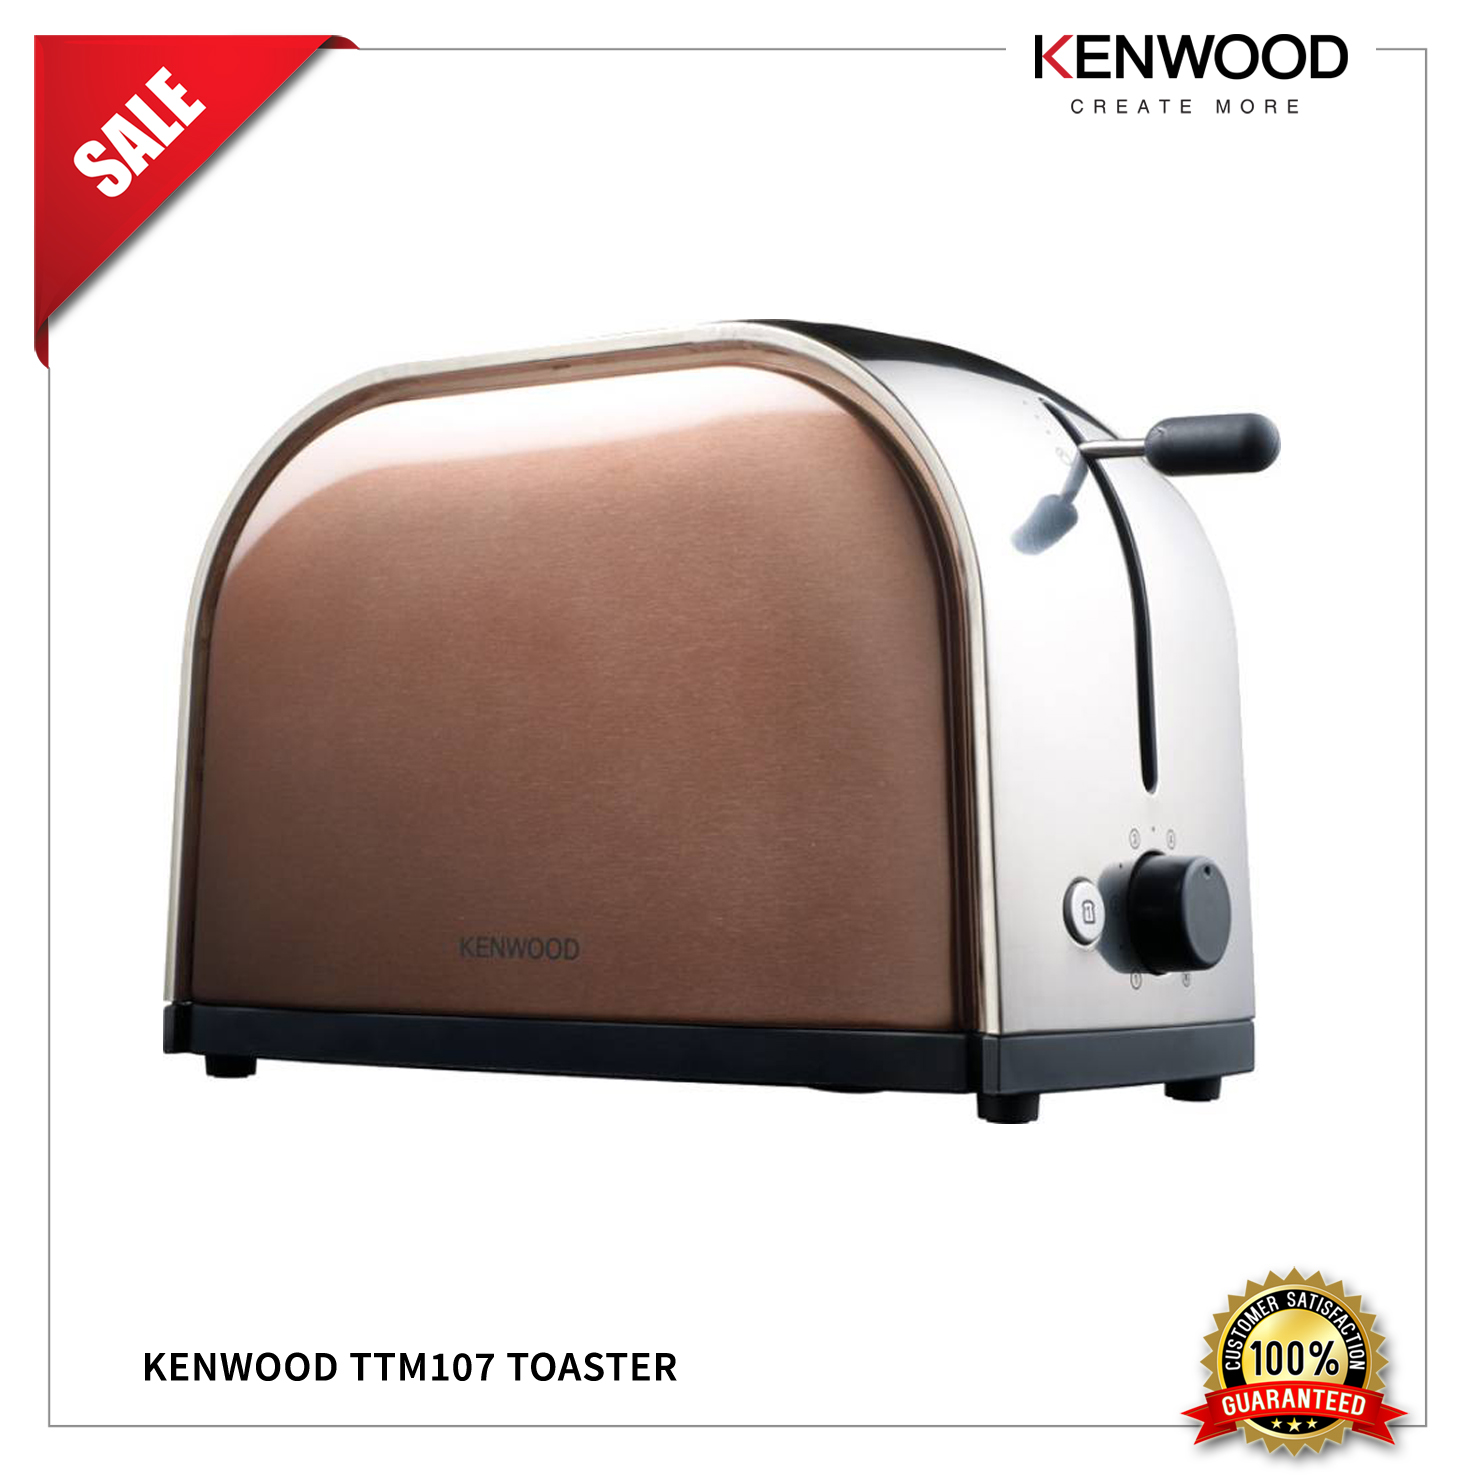 KENWOOD_TTM107_2 SL_P&V+ECO_ANTIQUE BRONZ – REVISI 1